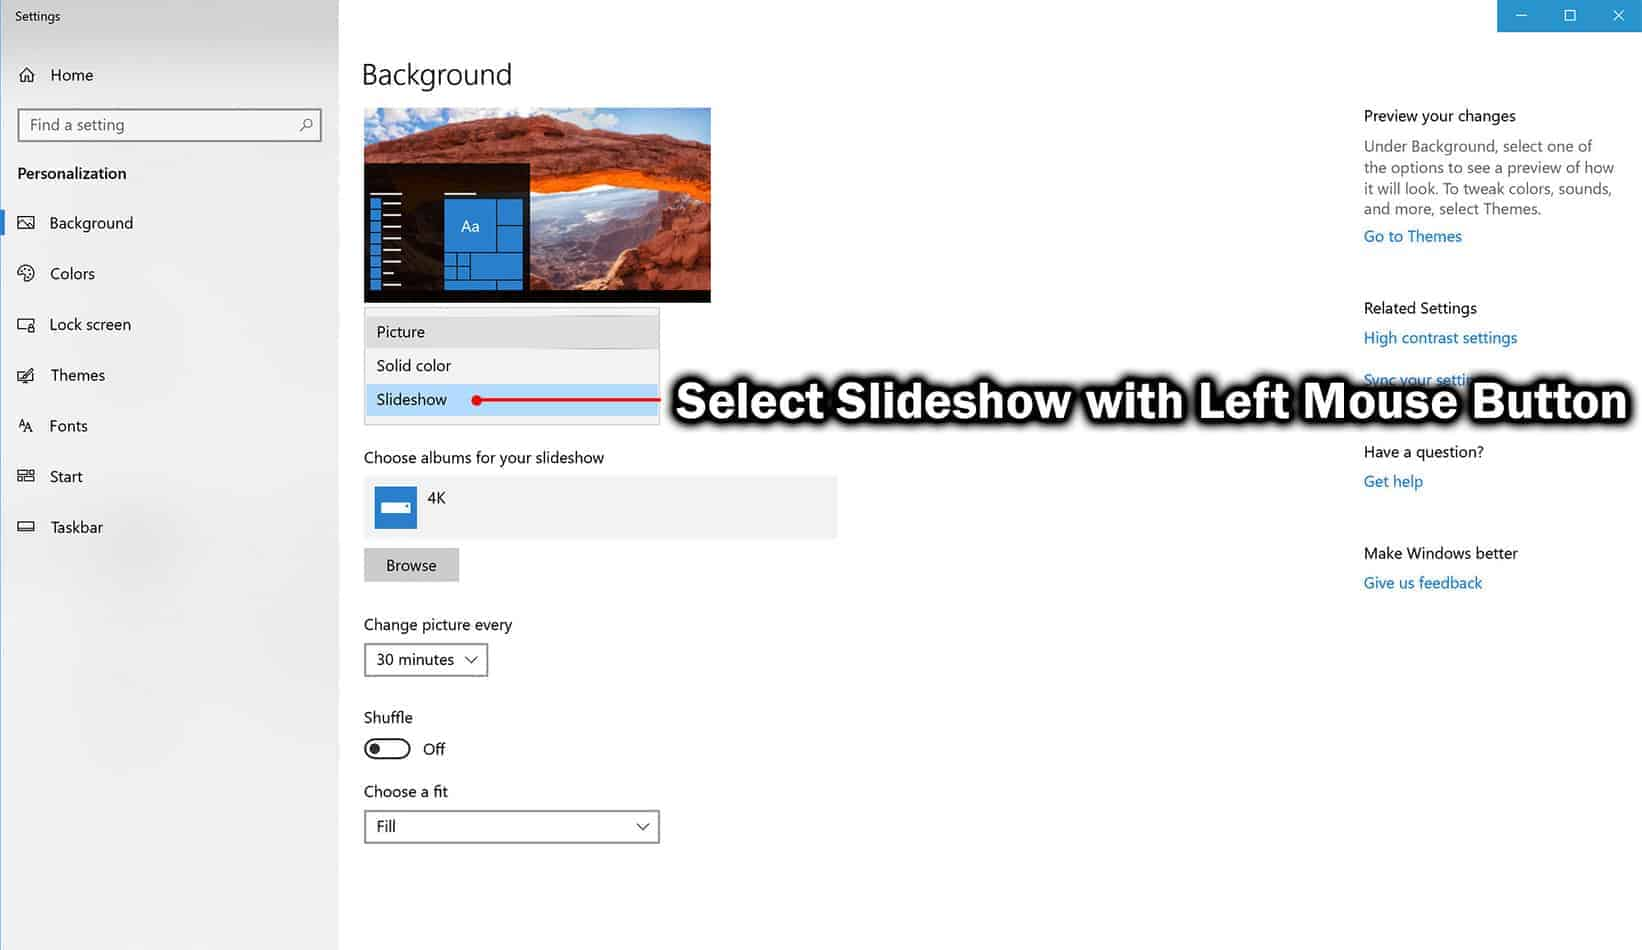 select slideshow option for background